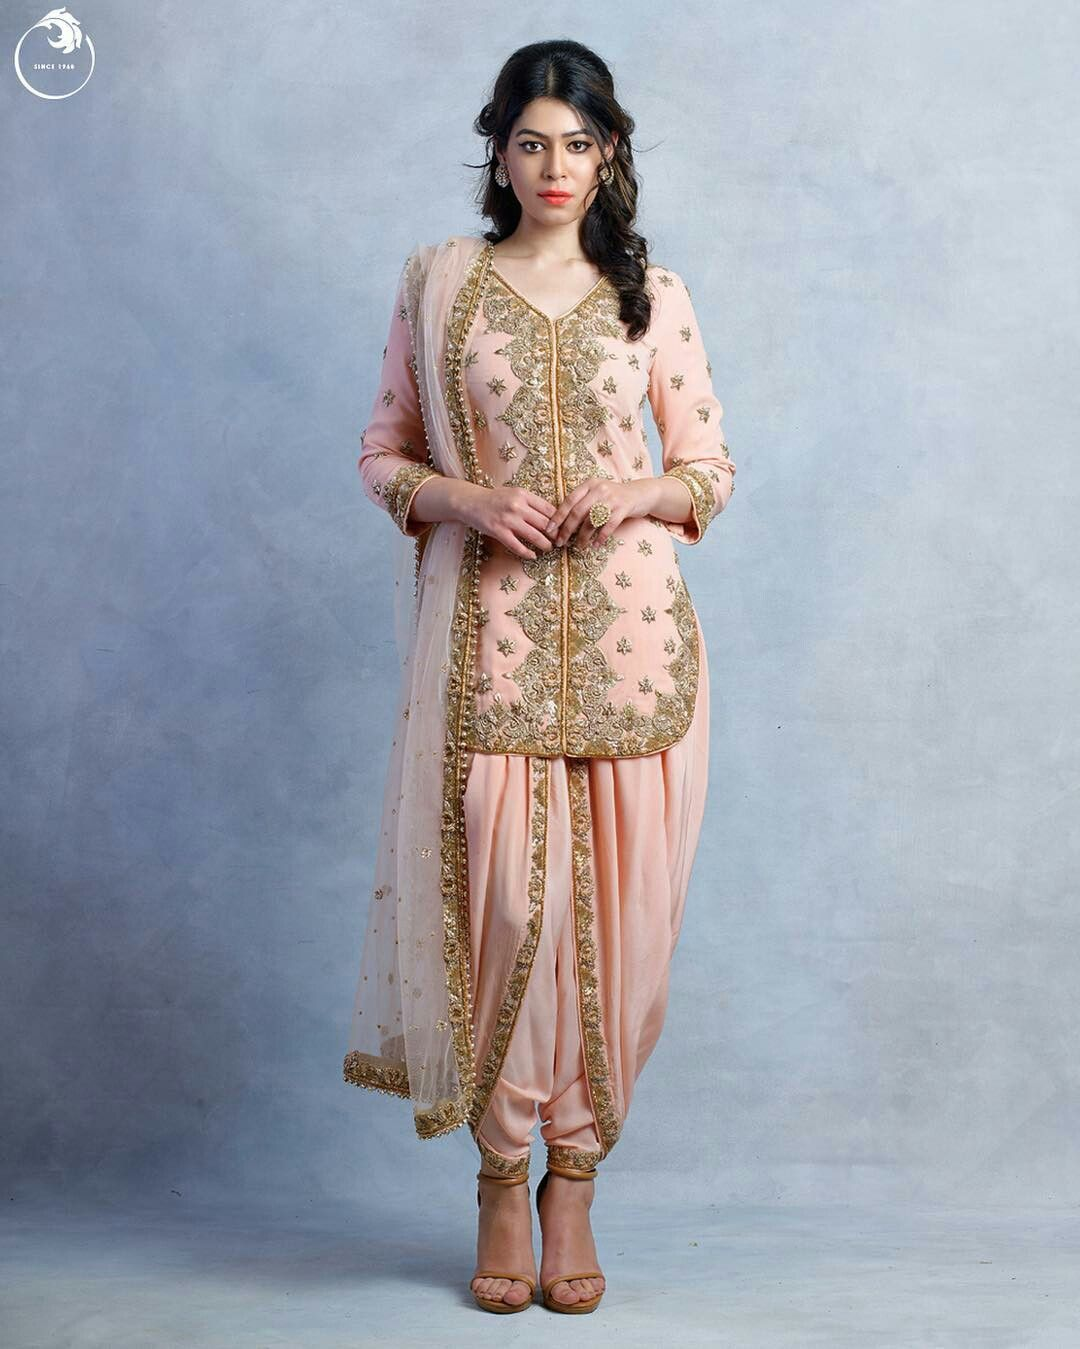 Pin de fofo en desi__ formal pakistani wear | Pinterest